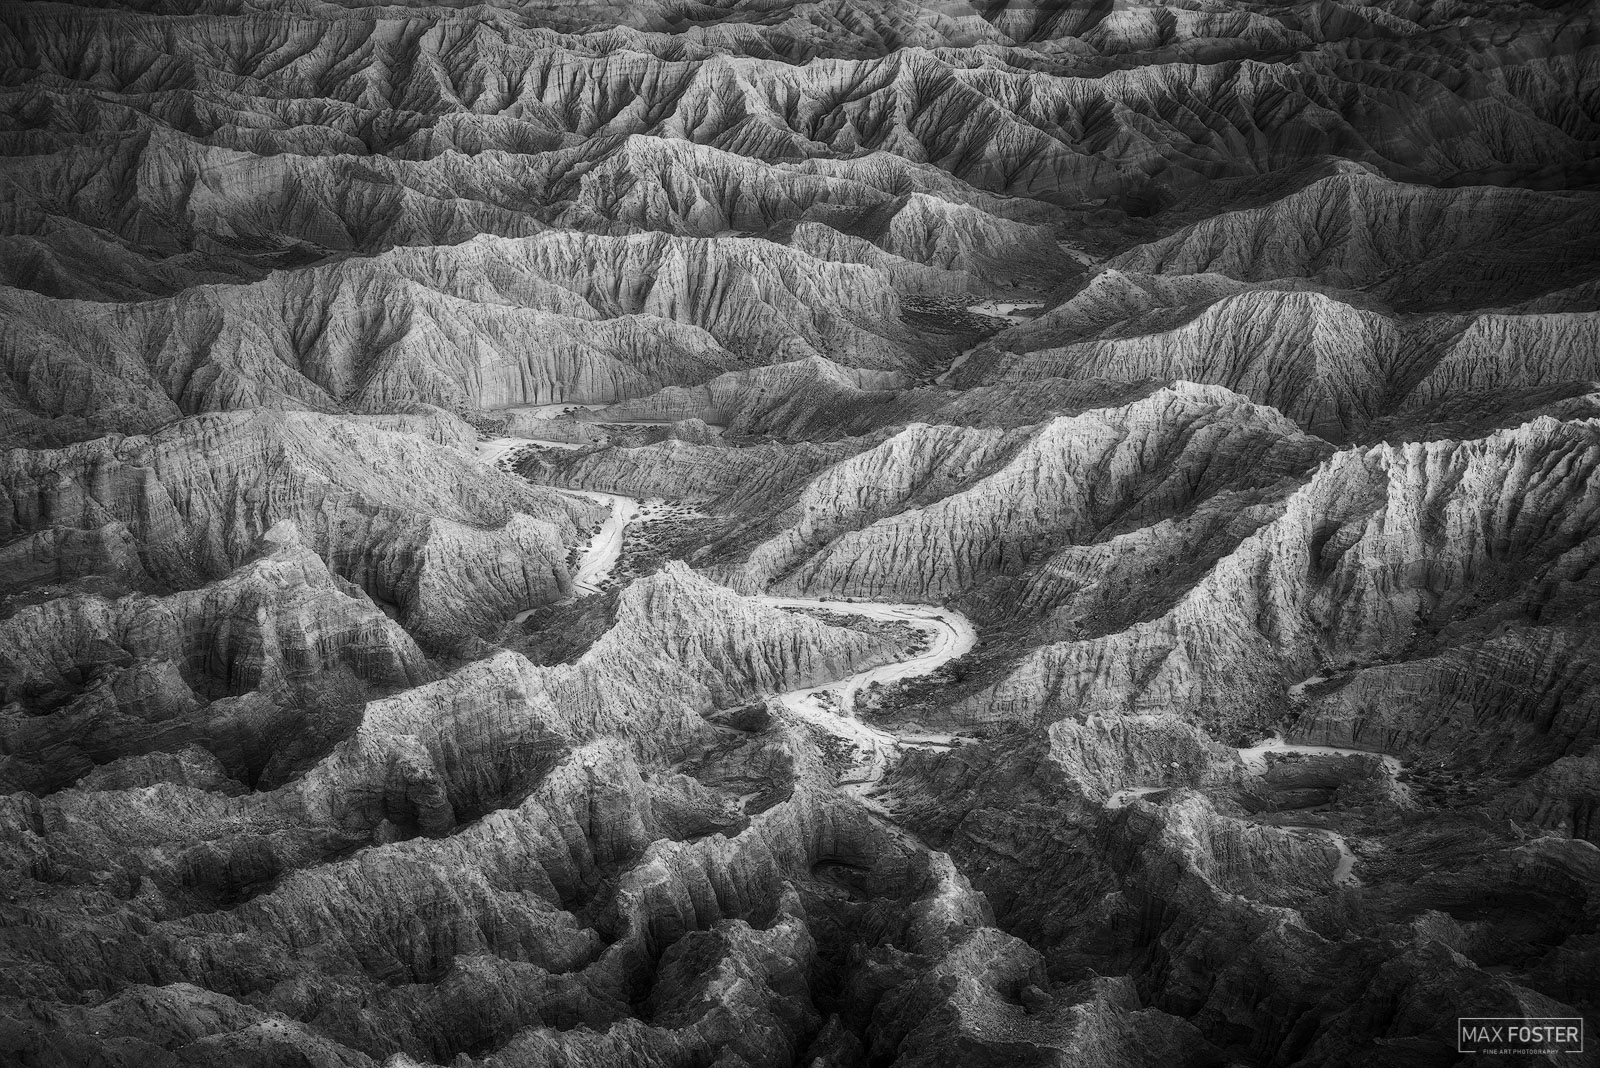 Fine Art Limited Edition of 50 The black and white or monochrome version of The Path Less Traveled, taken in the Anza Borrego...